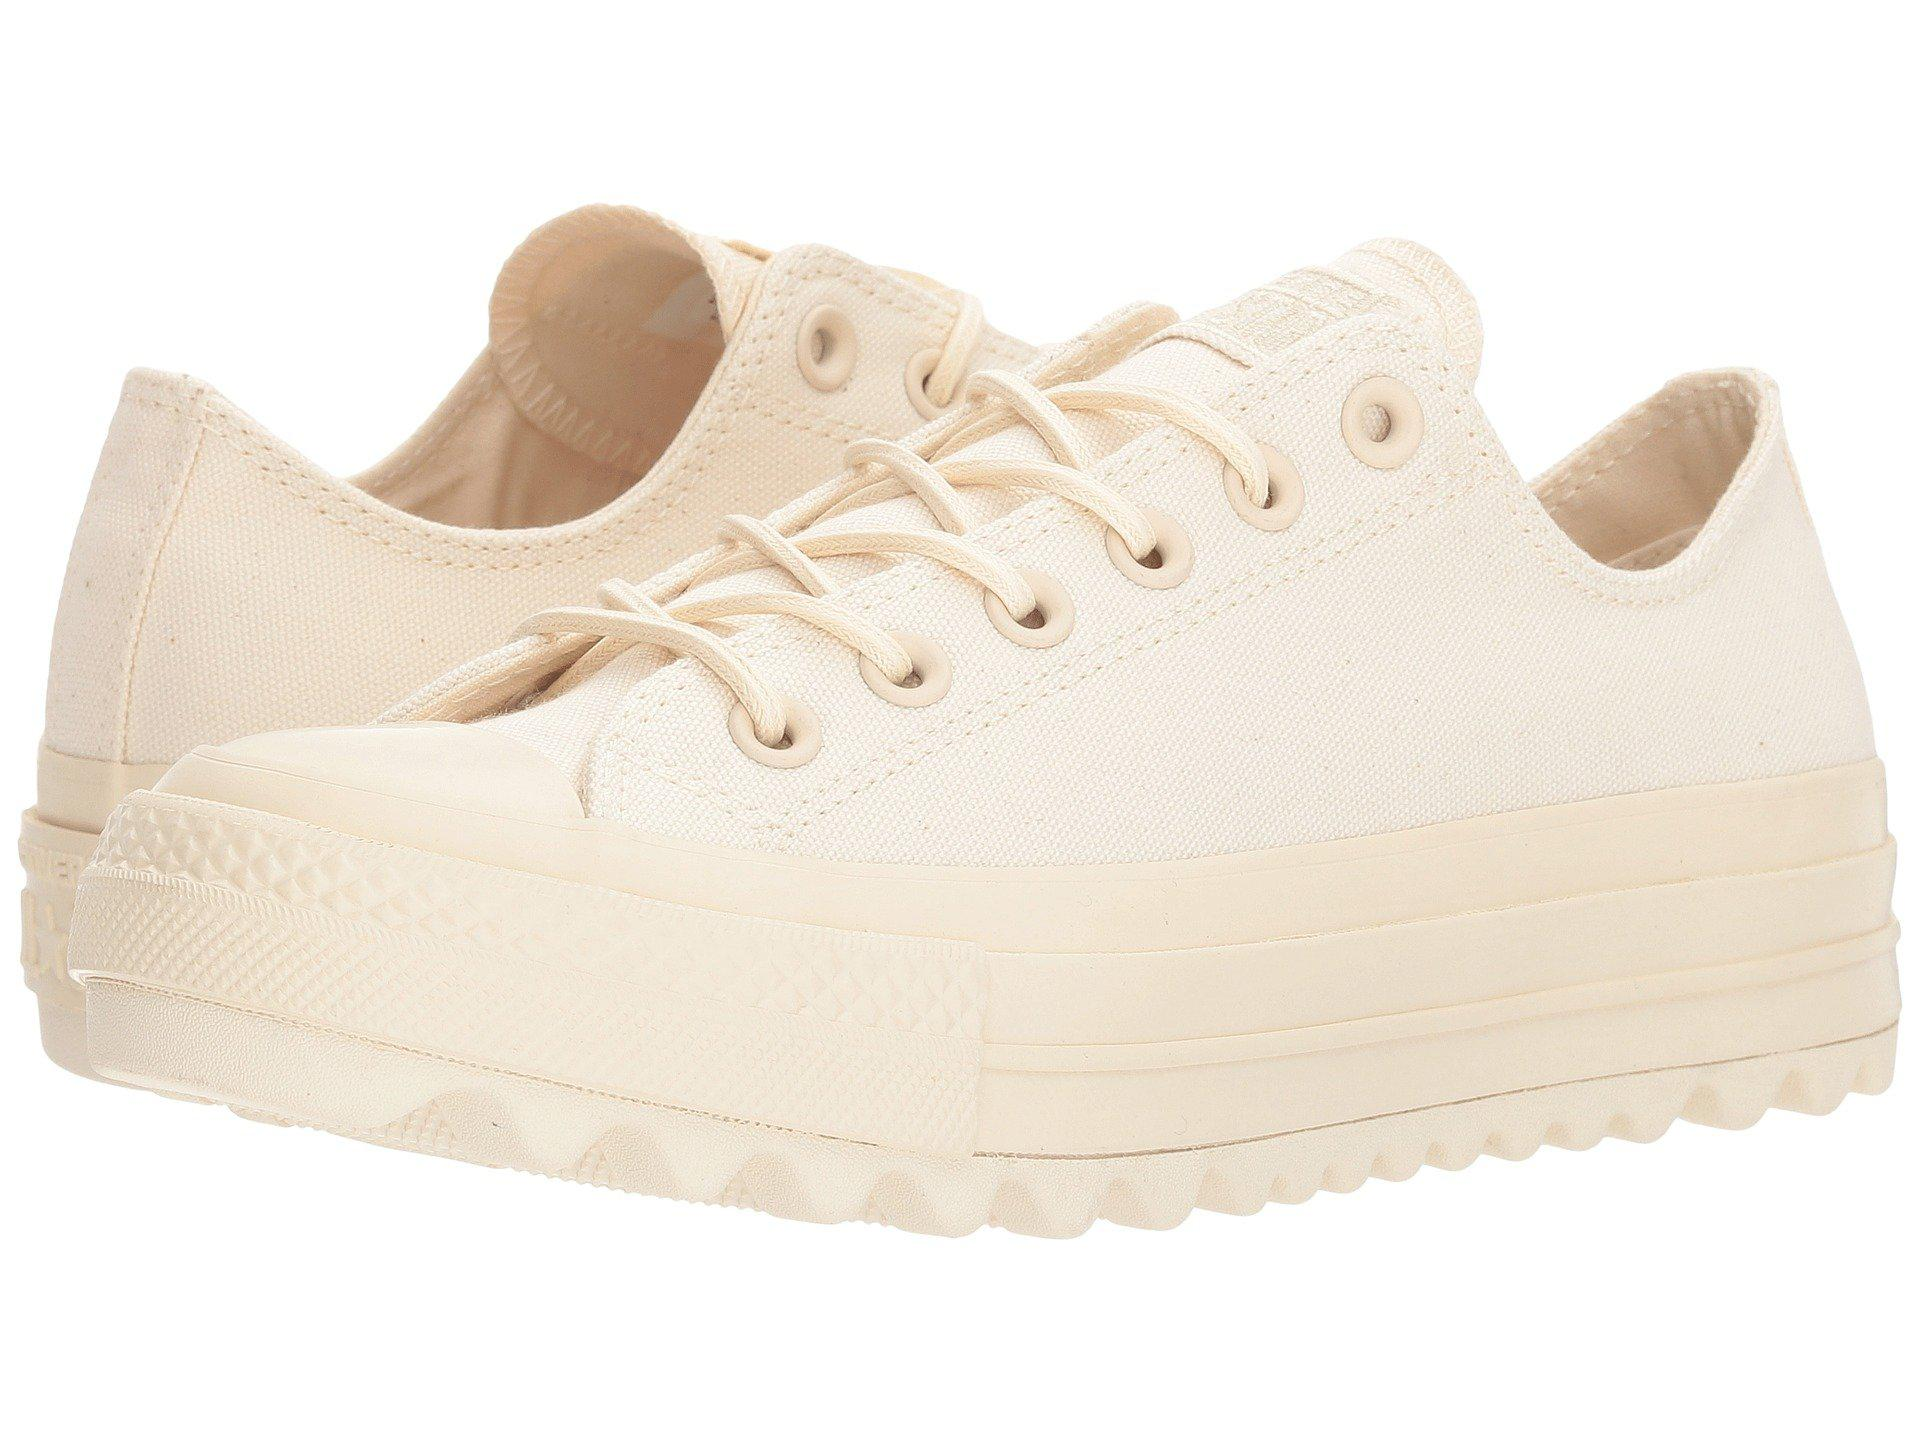 Womens CTAS Lift Ripple Ox Particle Beige Trainers Converse XhU4UbDs